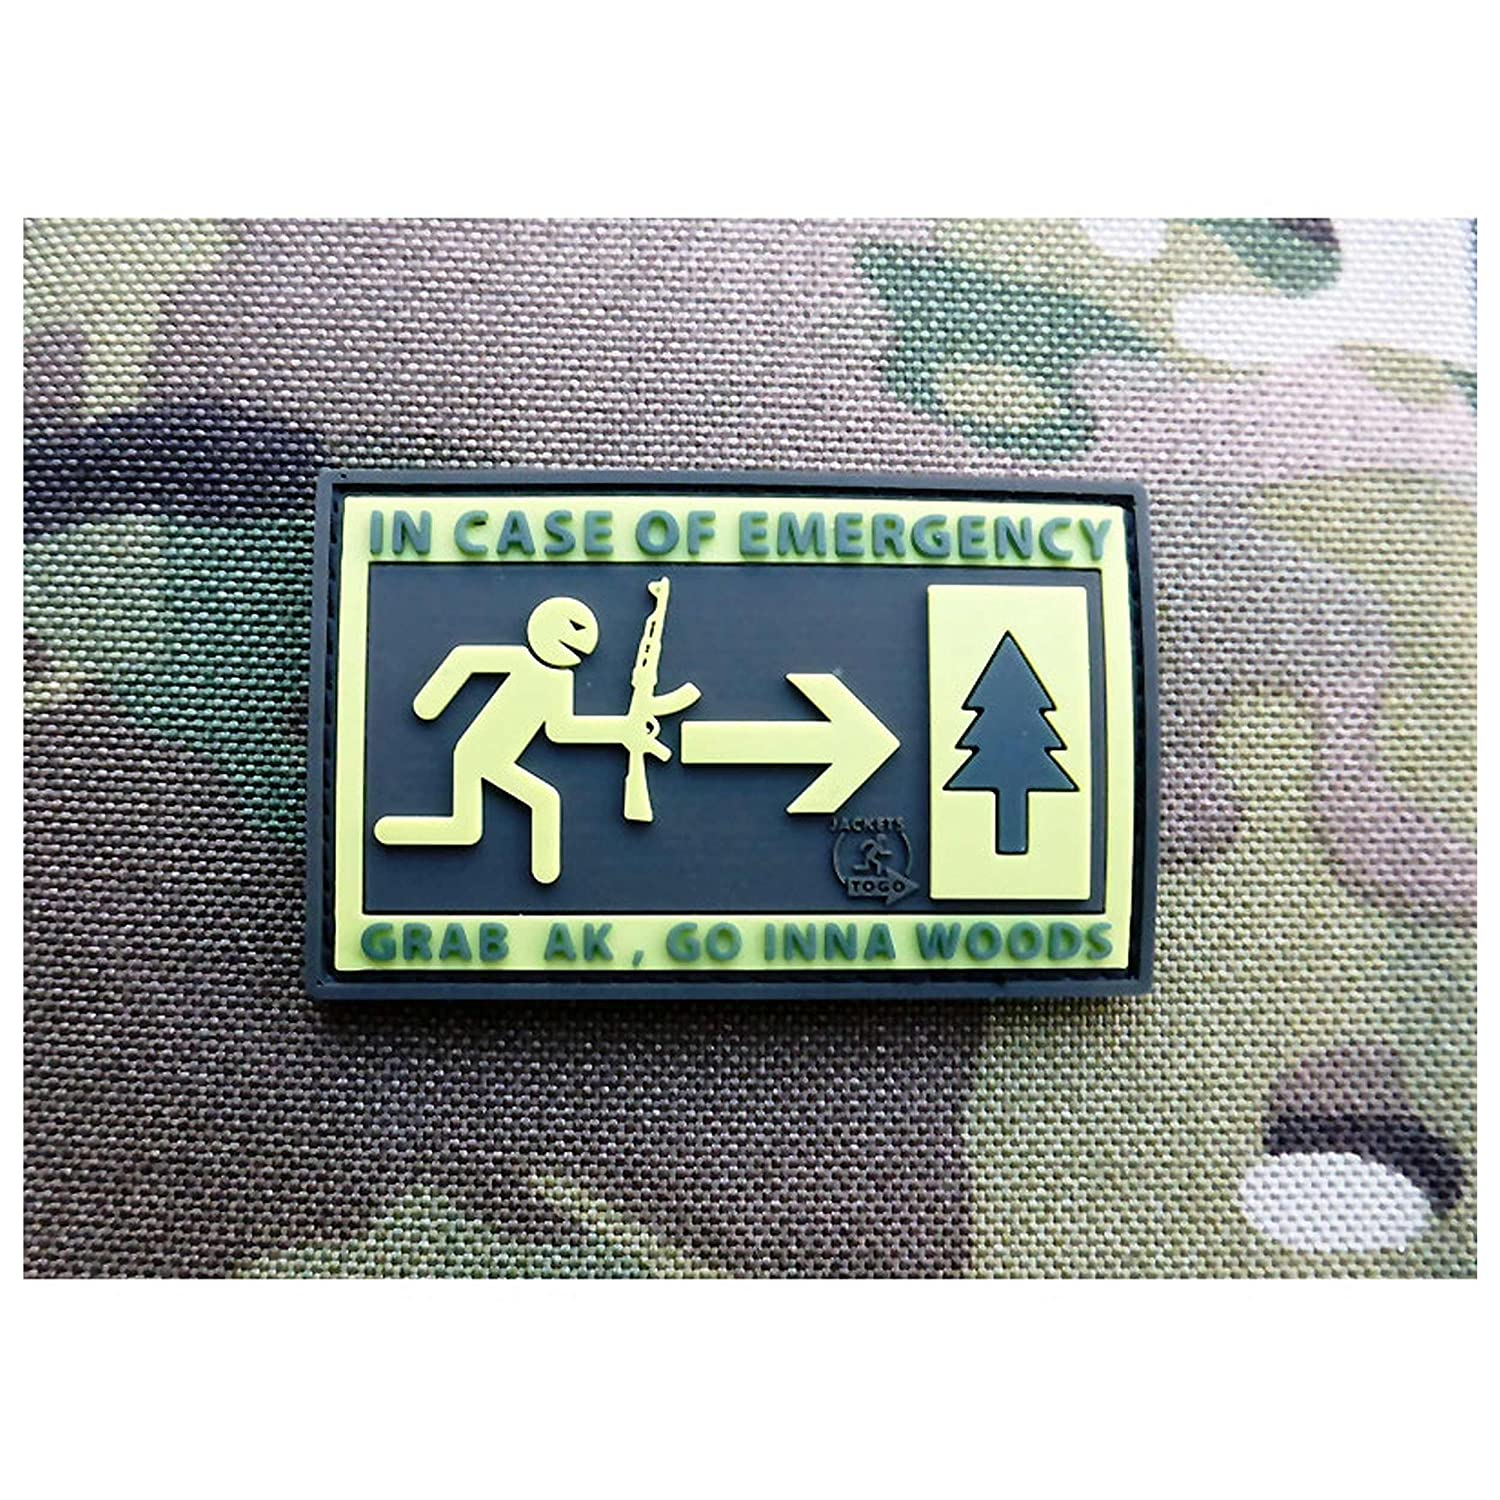 fullcolor 3D Rubber Patch Emergency Patch Jackets To Go JTG